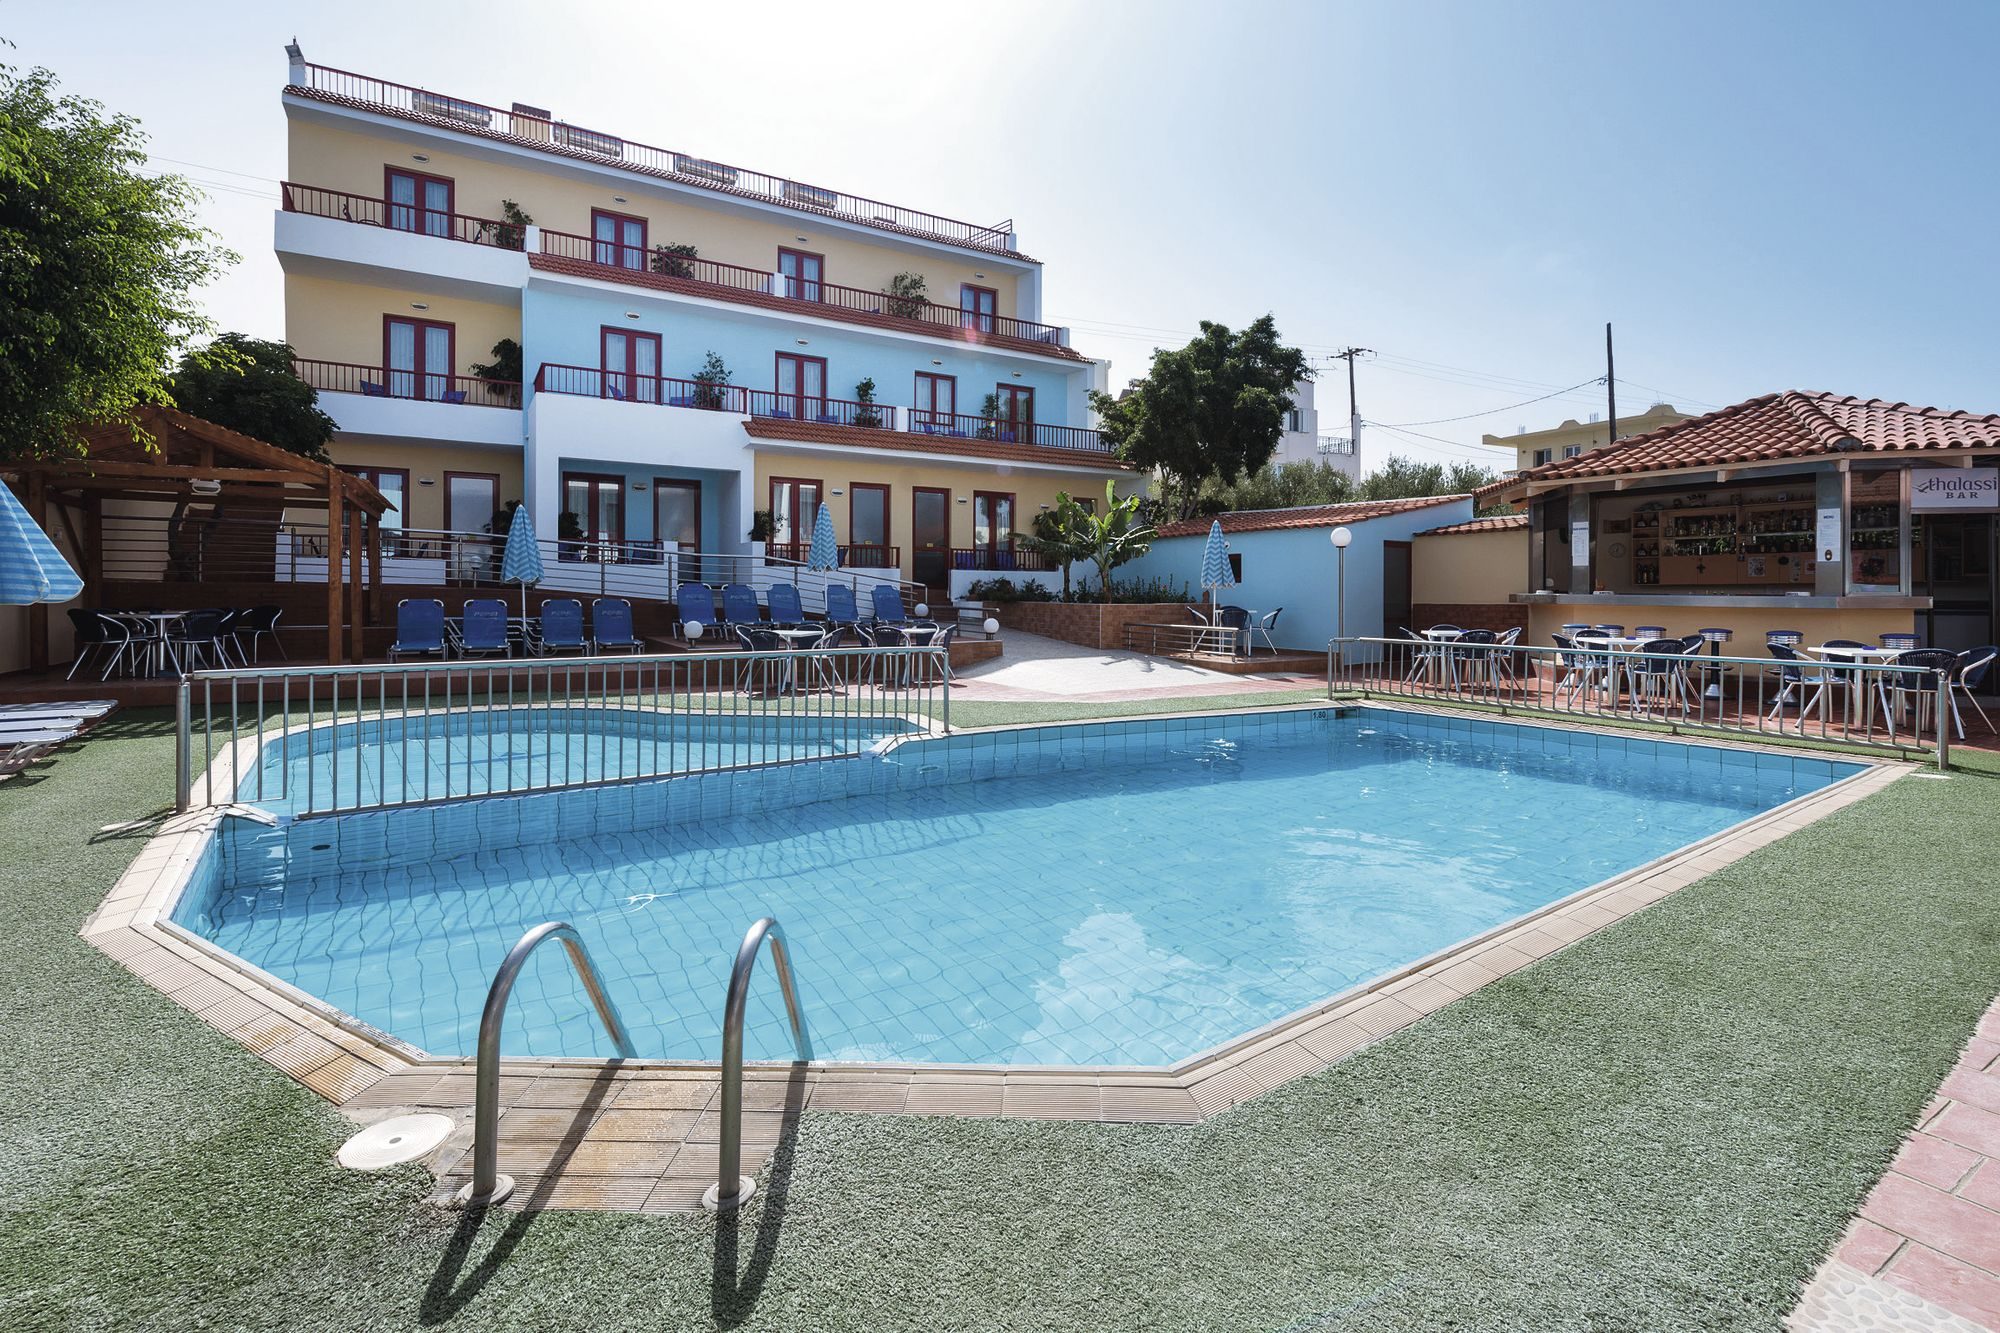 Holiday to Thalassi Hotel in SFAKAKI (GREECE) for 3 nights (HB) departing from gatwick on 11 May